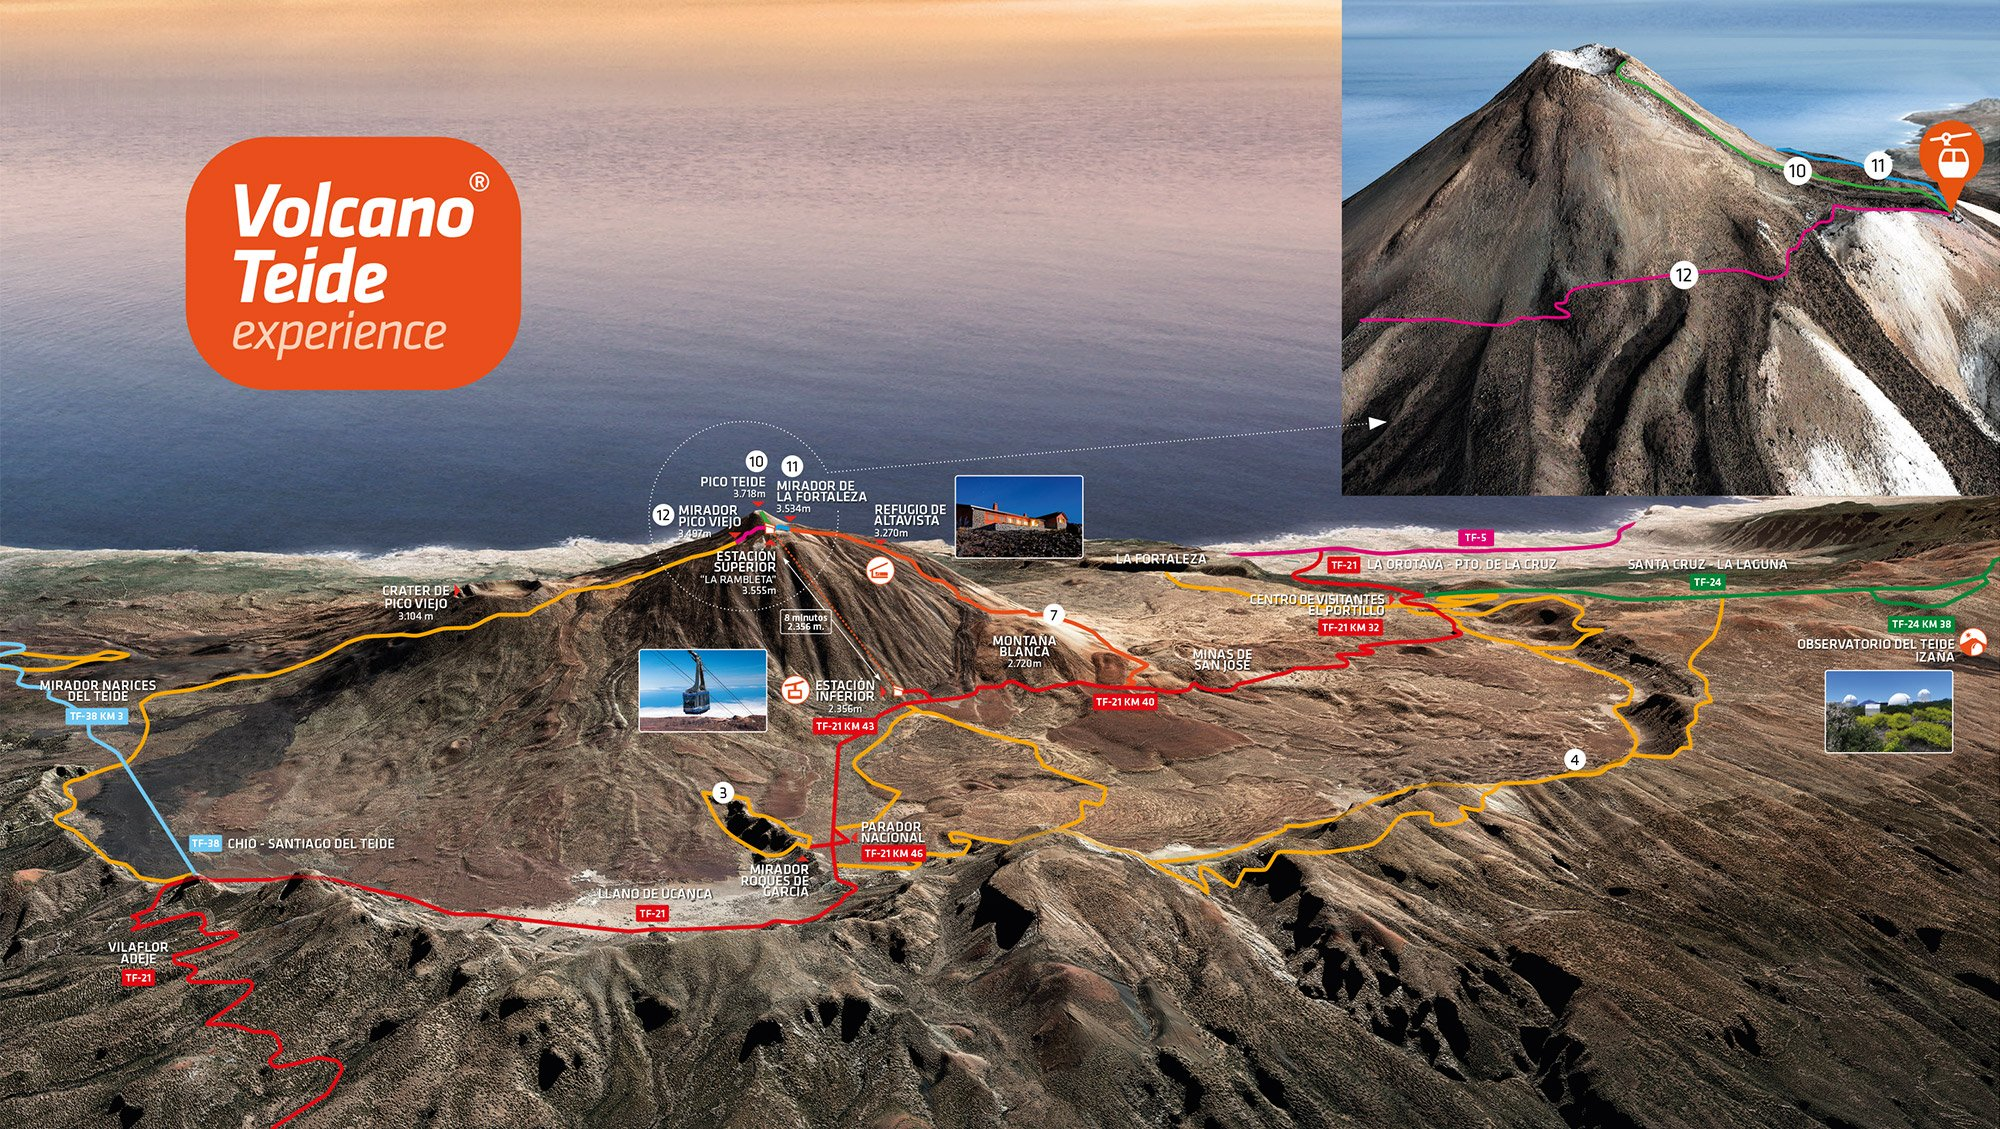 Doing the Mount Teide summit tour with the cable car